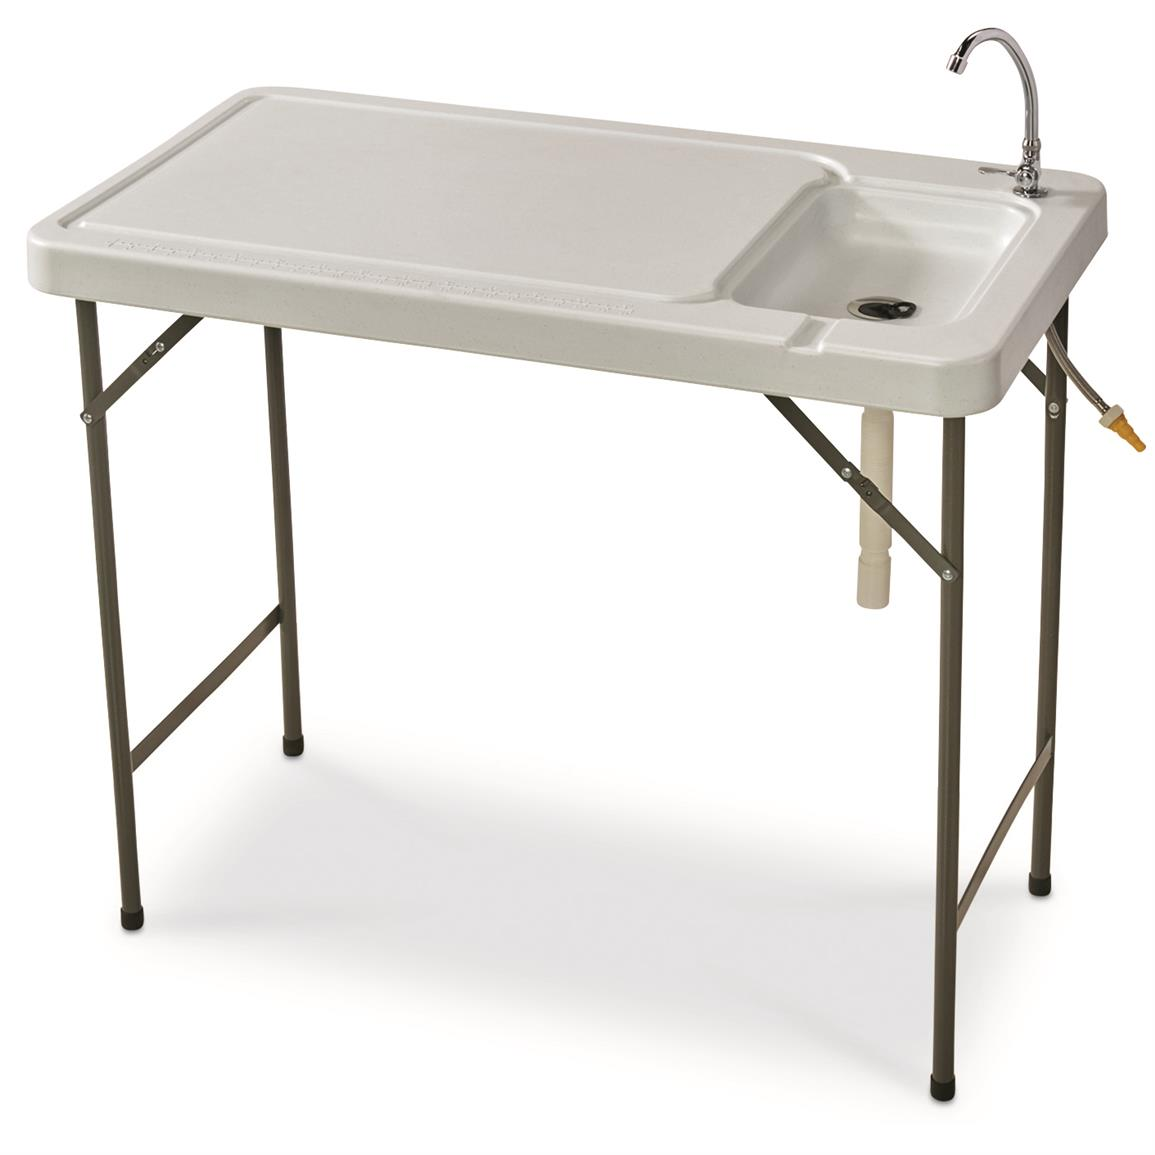 Details About Portable Fish Cleaning Table With Sink Faucet Folding Stainless Steel Faucet